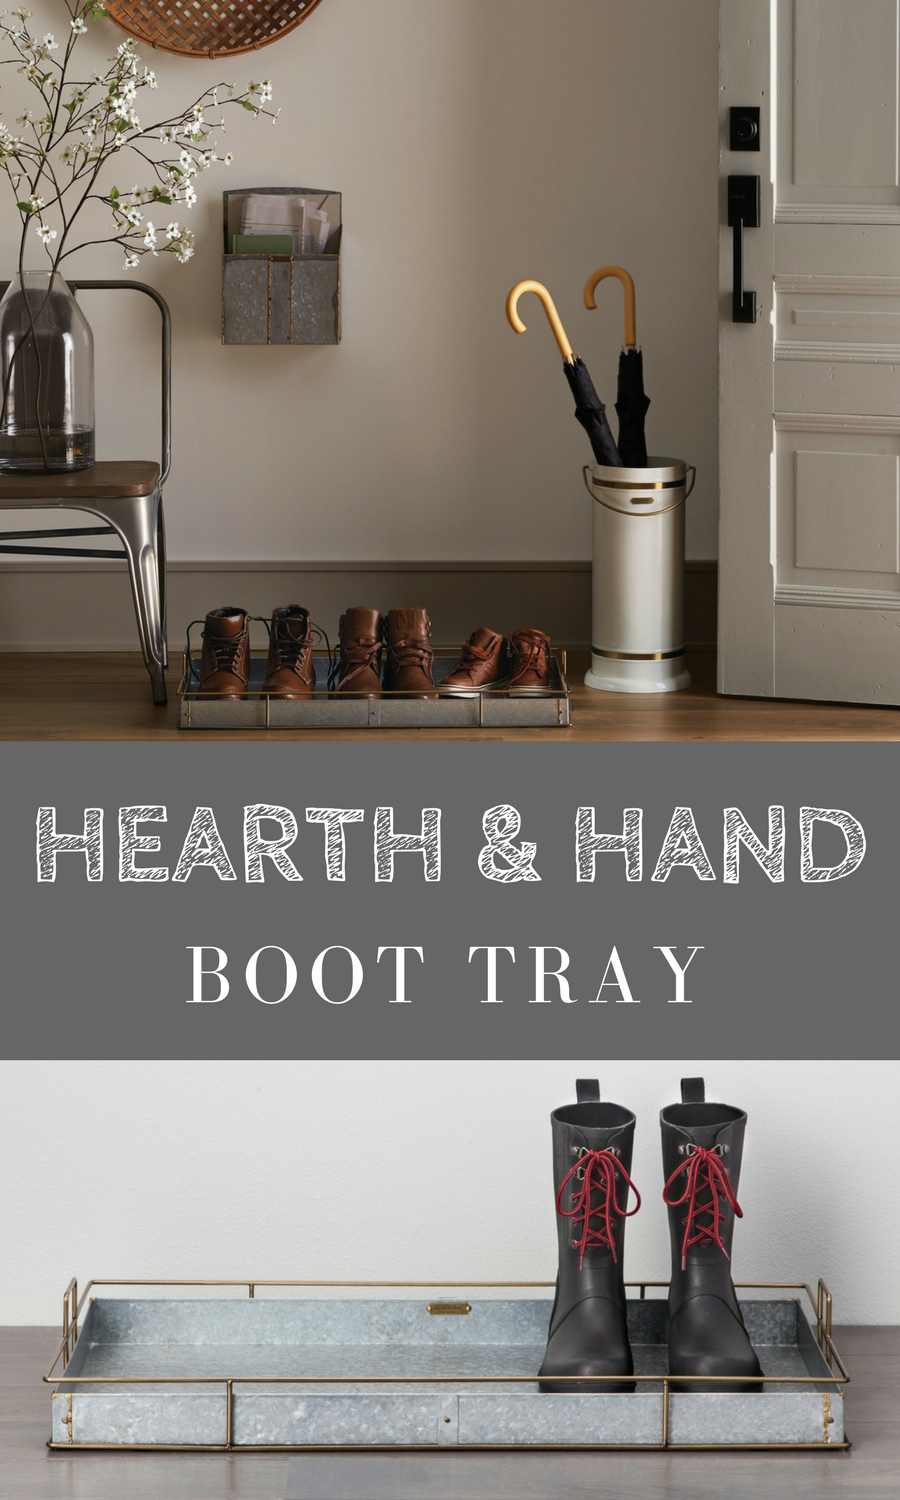 Beautiful Rustic Farmhouse Boot Tray By Hearth U0026 Hand With Magnolia. This  Would Be Great At Entryway Or Even In The Mudroom To Keep Shoes Organized  And The ...